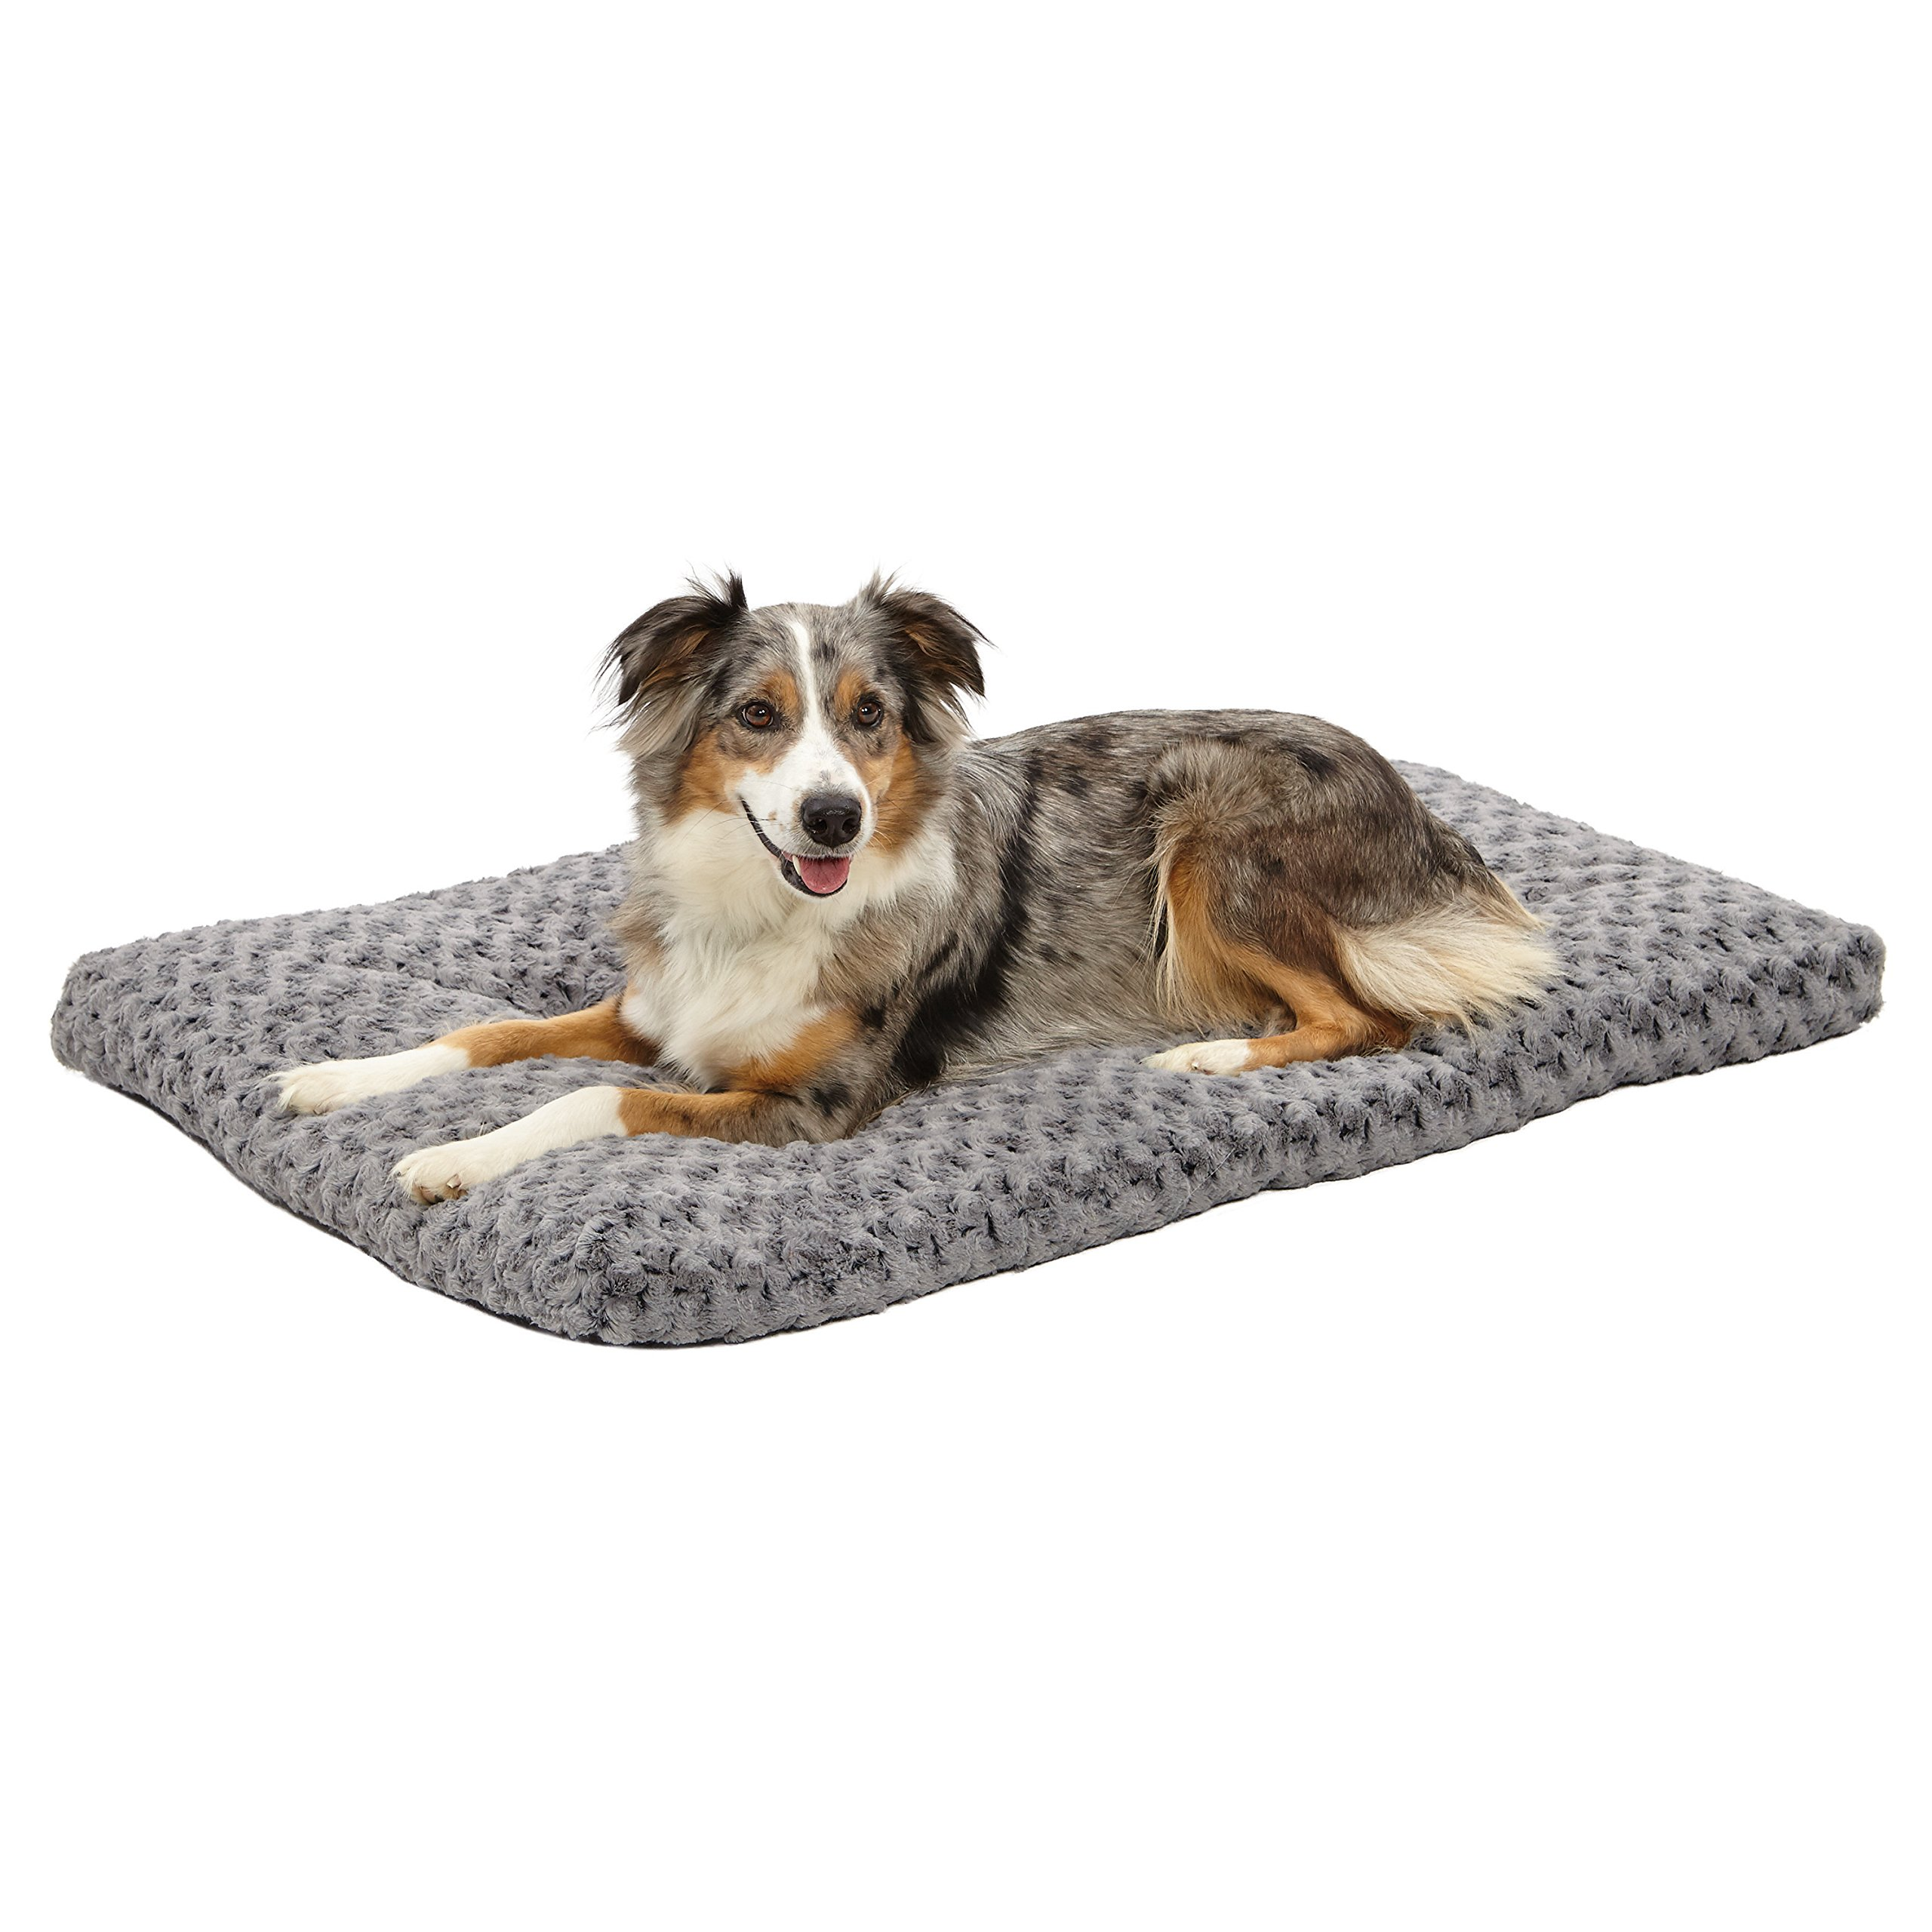 Plush Dog Bed   Ombré Swirl Dog Bed & Cat Bed   Gray 40L x 27W x 2.5H - Inches for Large Dog Breeds